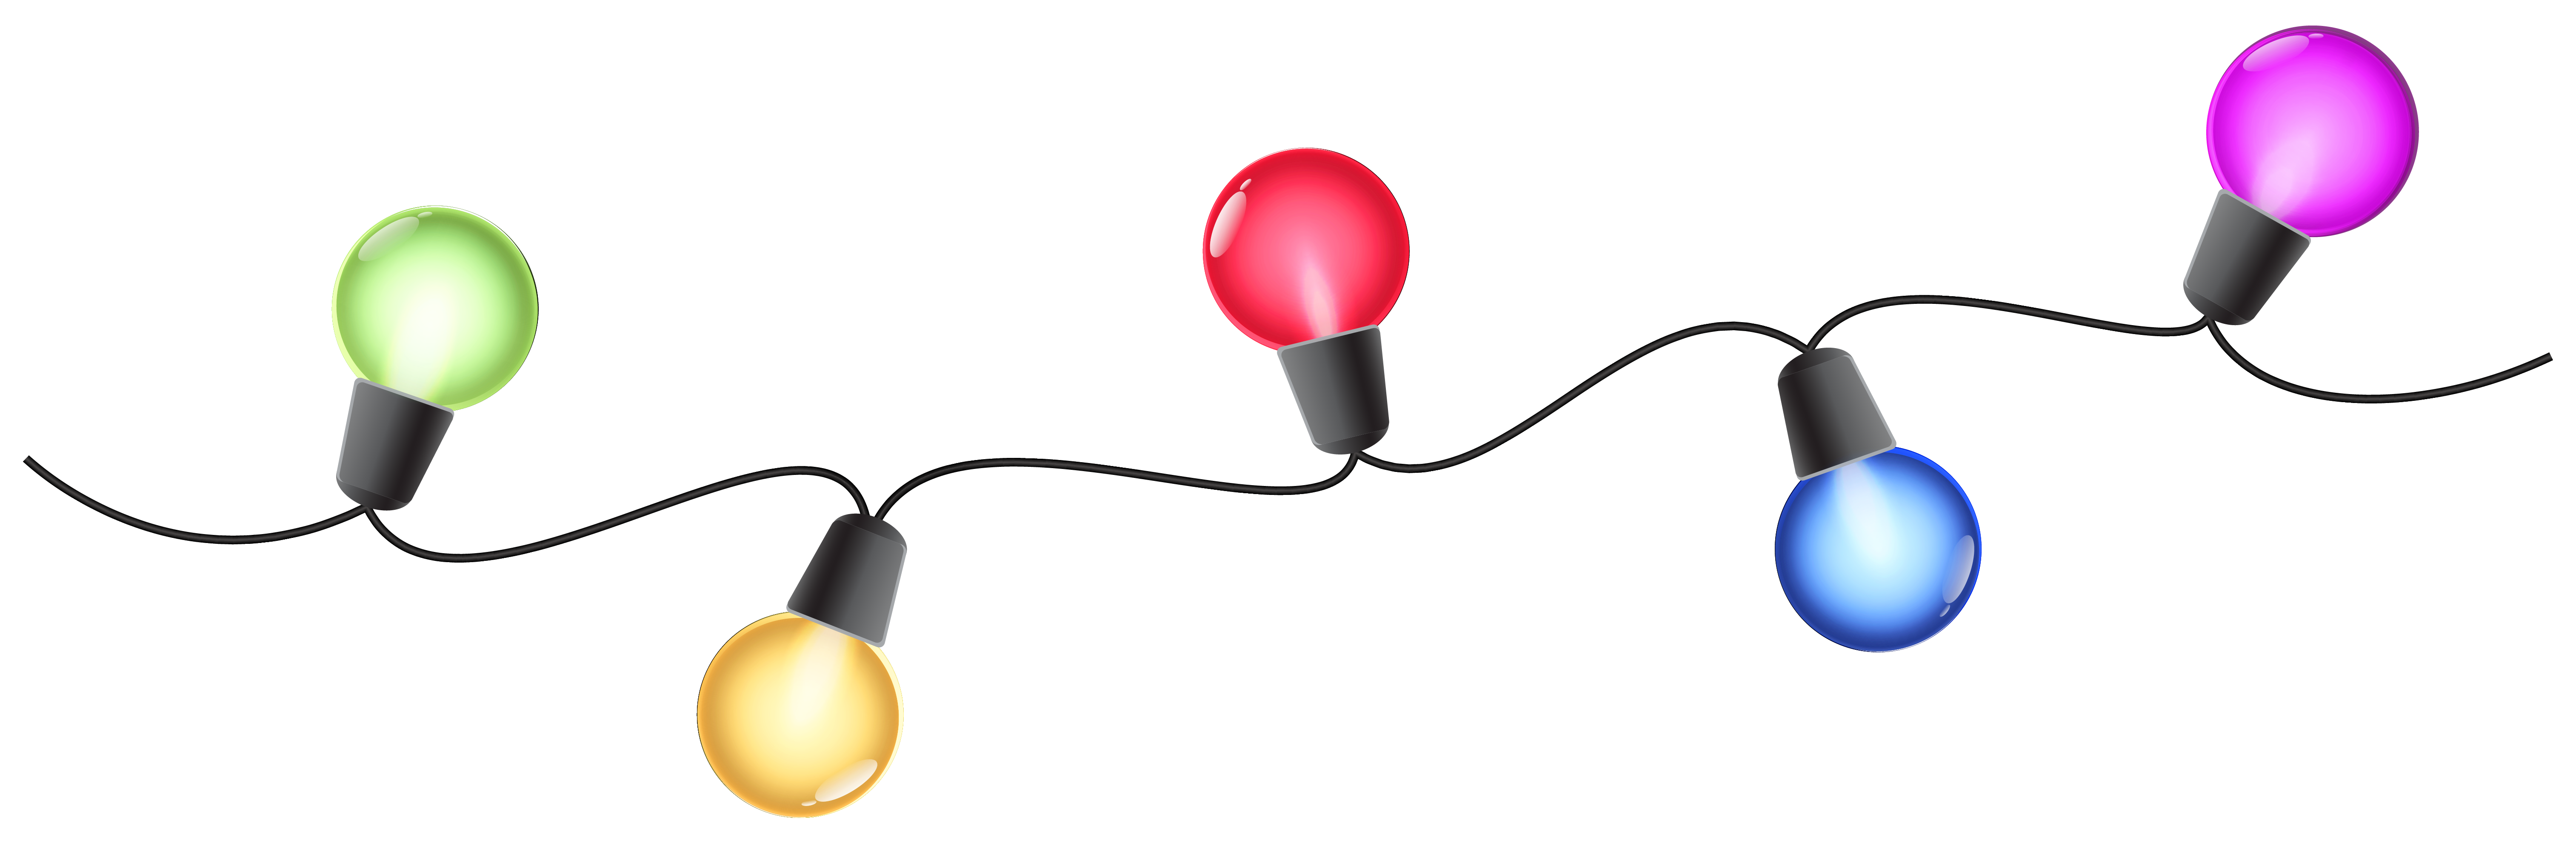 Christmas colorful lights png. Lamp clipart flashlight